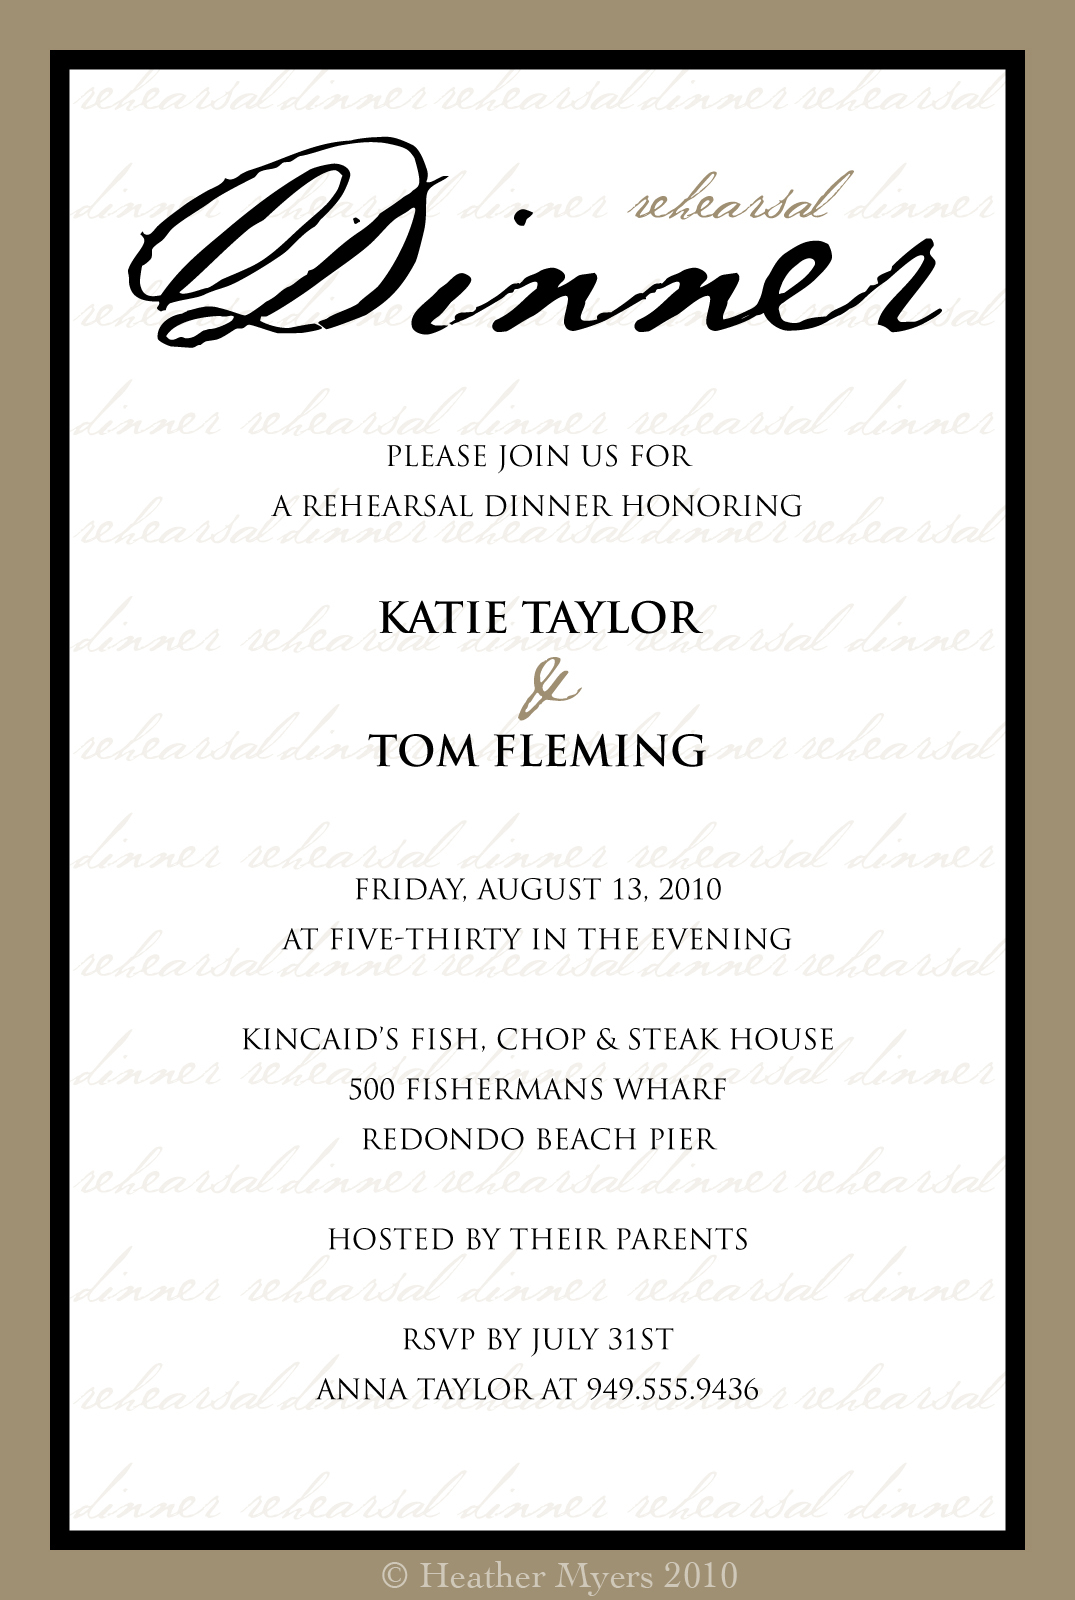 Formal Business Dinner Invitation Template – Business Invitation Templates